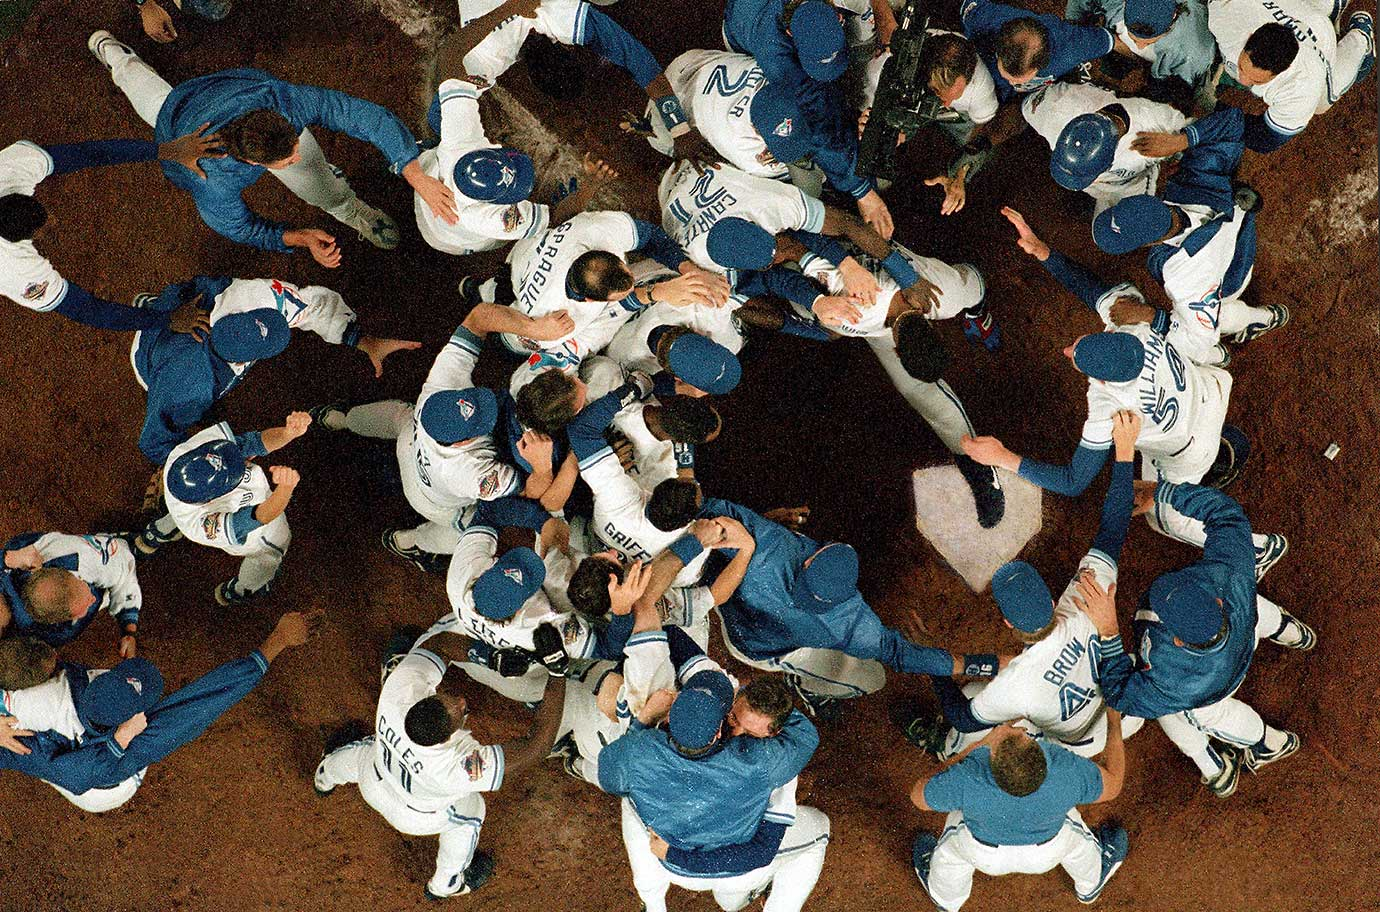 Toronto Blue Jays players greeting Joe Carter at home plate after his World Series-winning home run in 1993 against the Philadelphia Phillies.